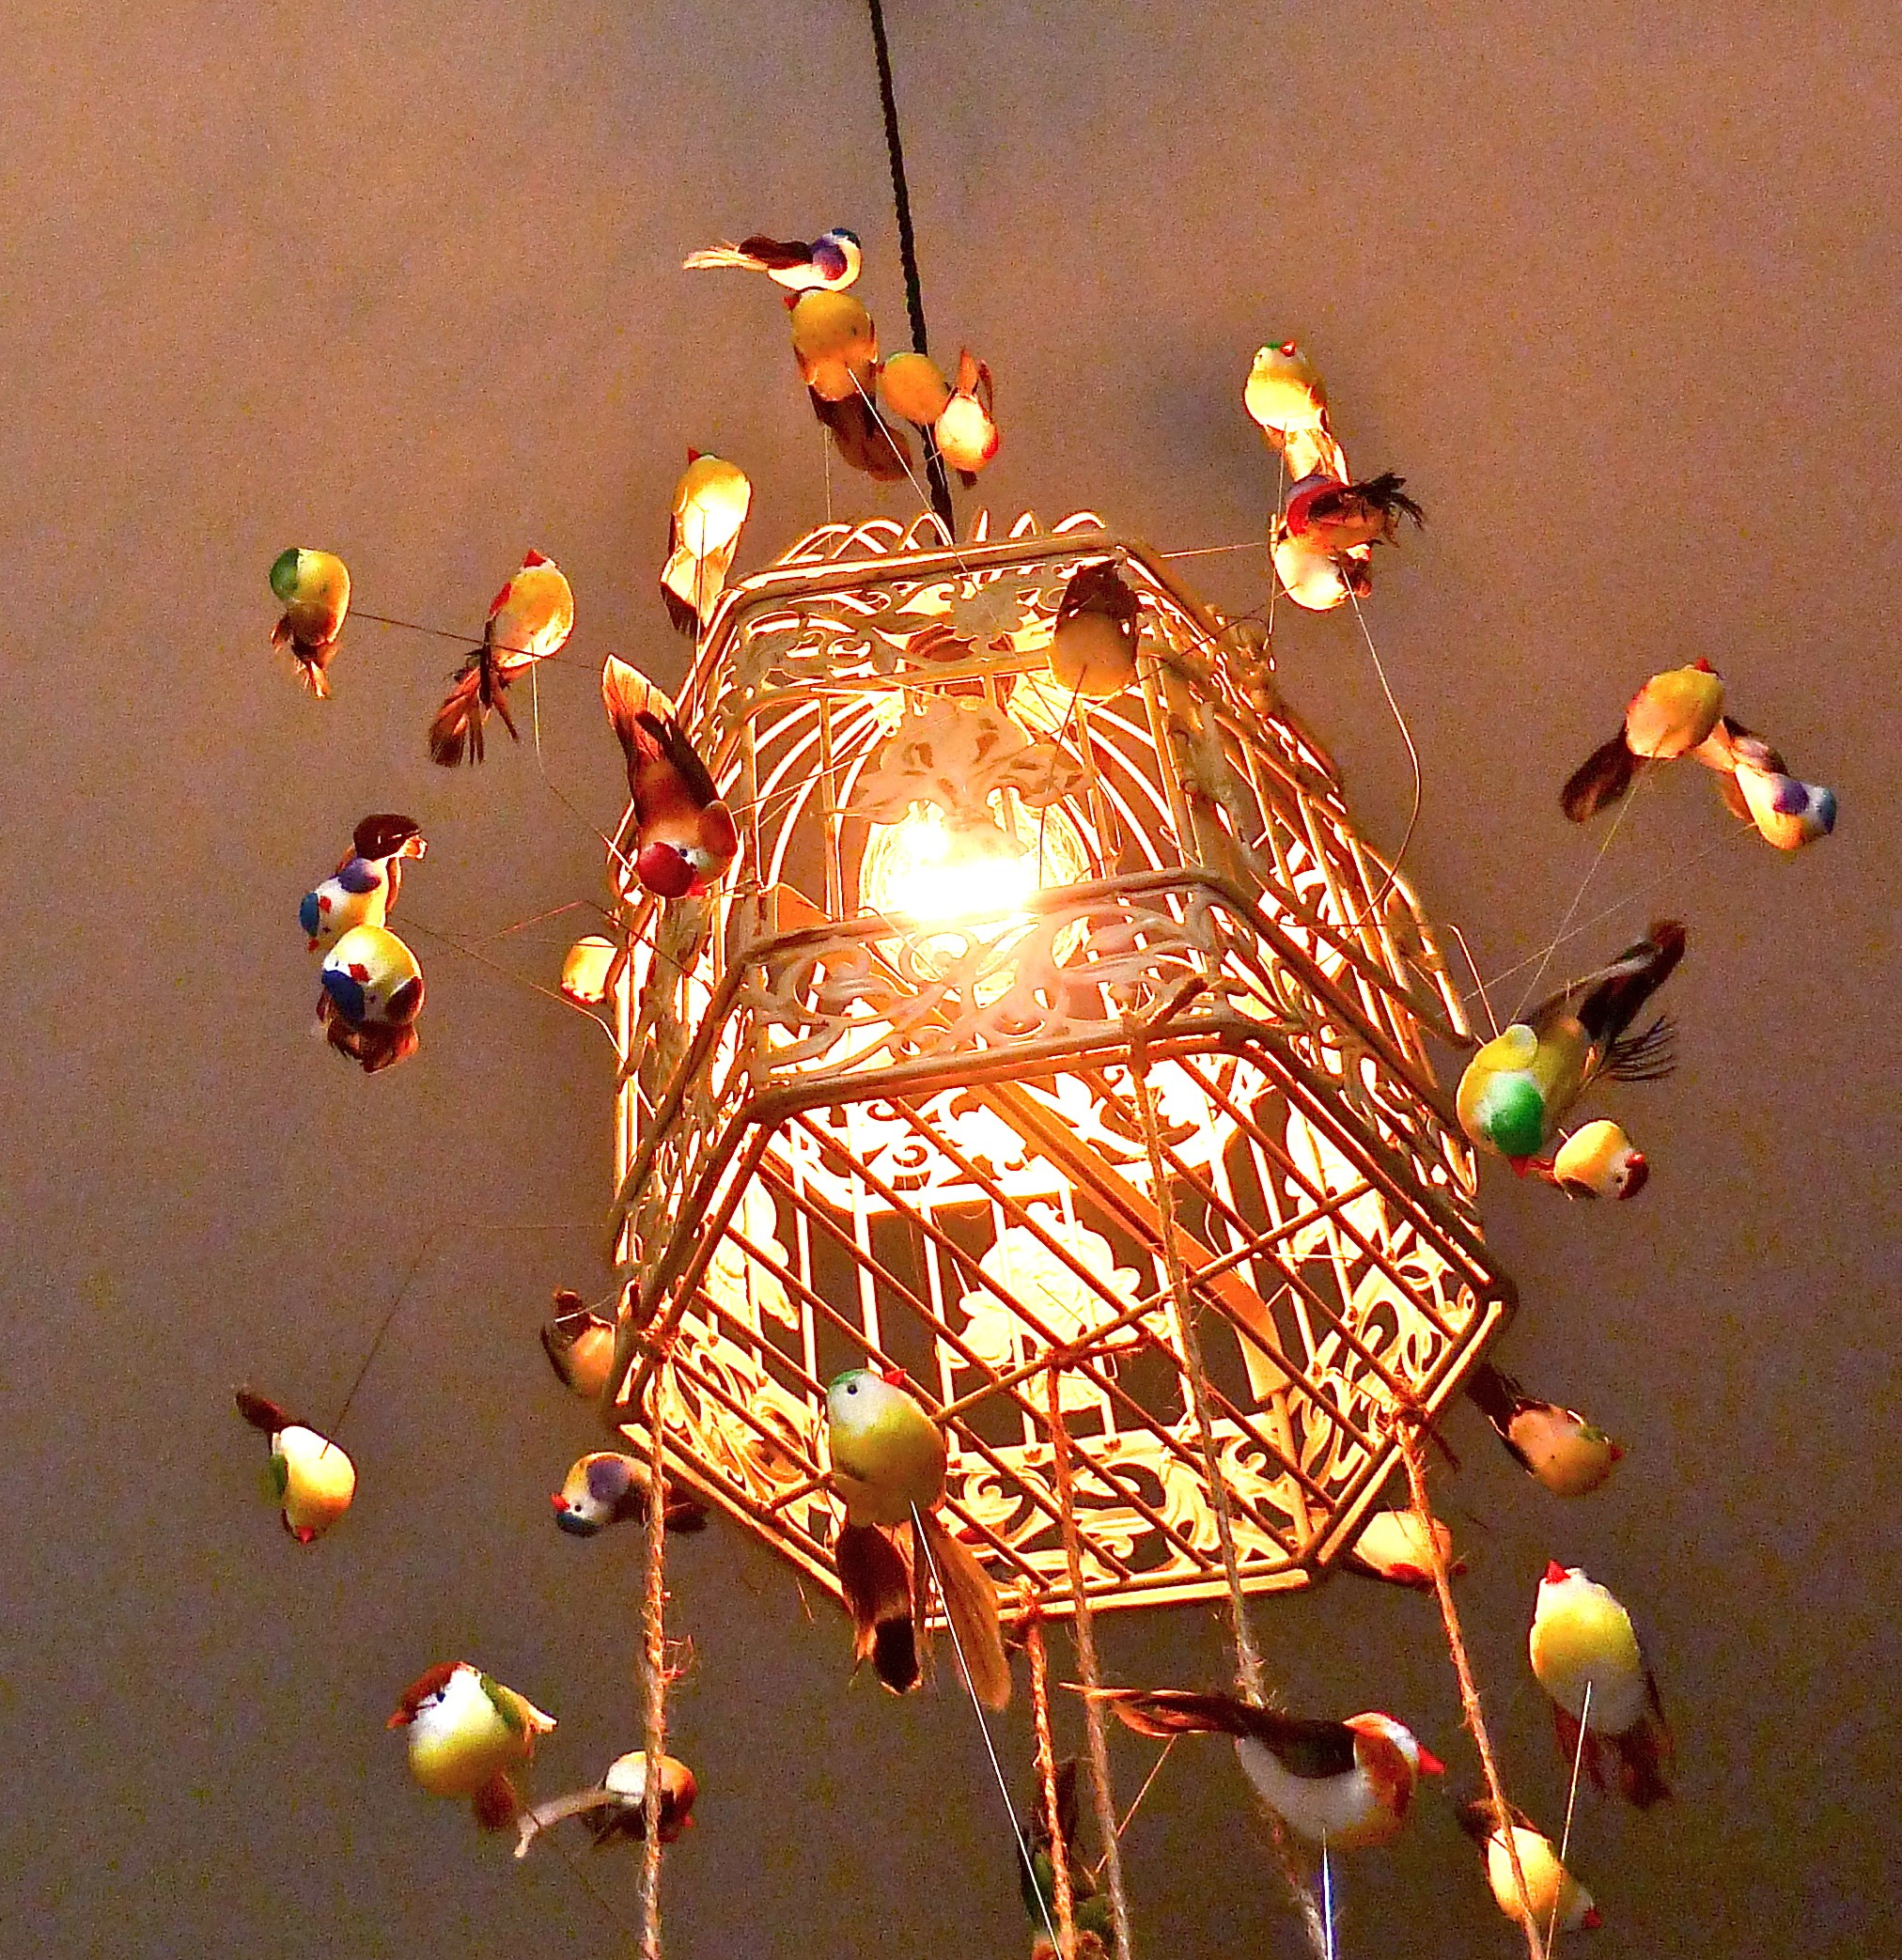 in under bless diy of work required birdcage electrical lamp no minutes